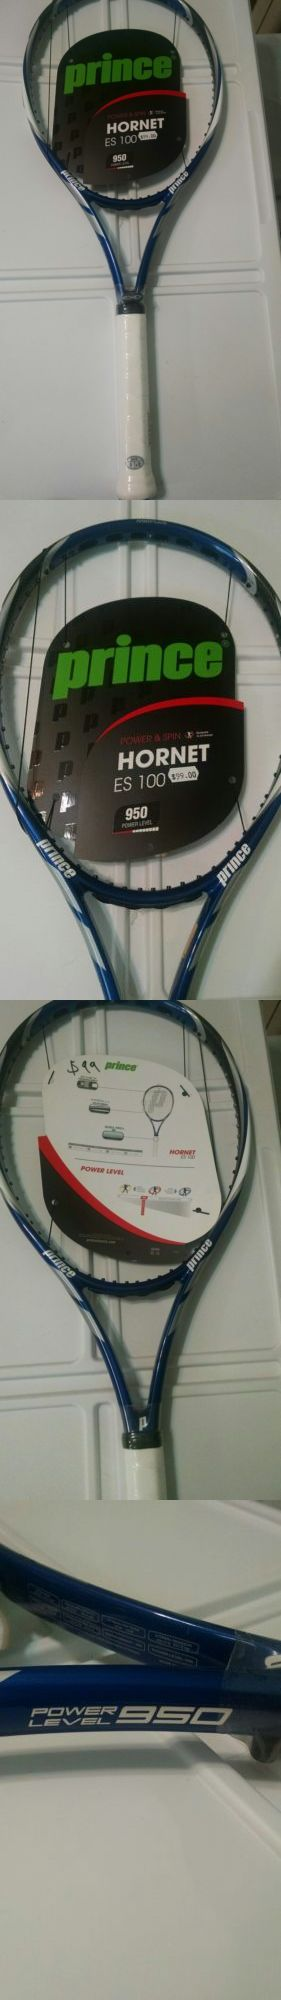 Racquets 20871: Prince Hornet Es 100 Unstrung Tennis Racquet - Grip 4 3 8 -> BUY IT NOW ONLY: $99 on eBay!